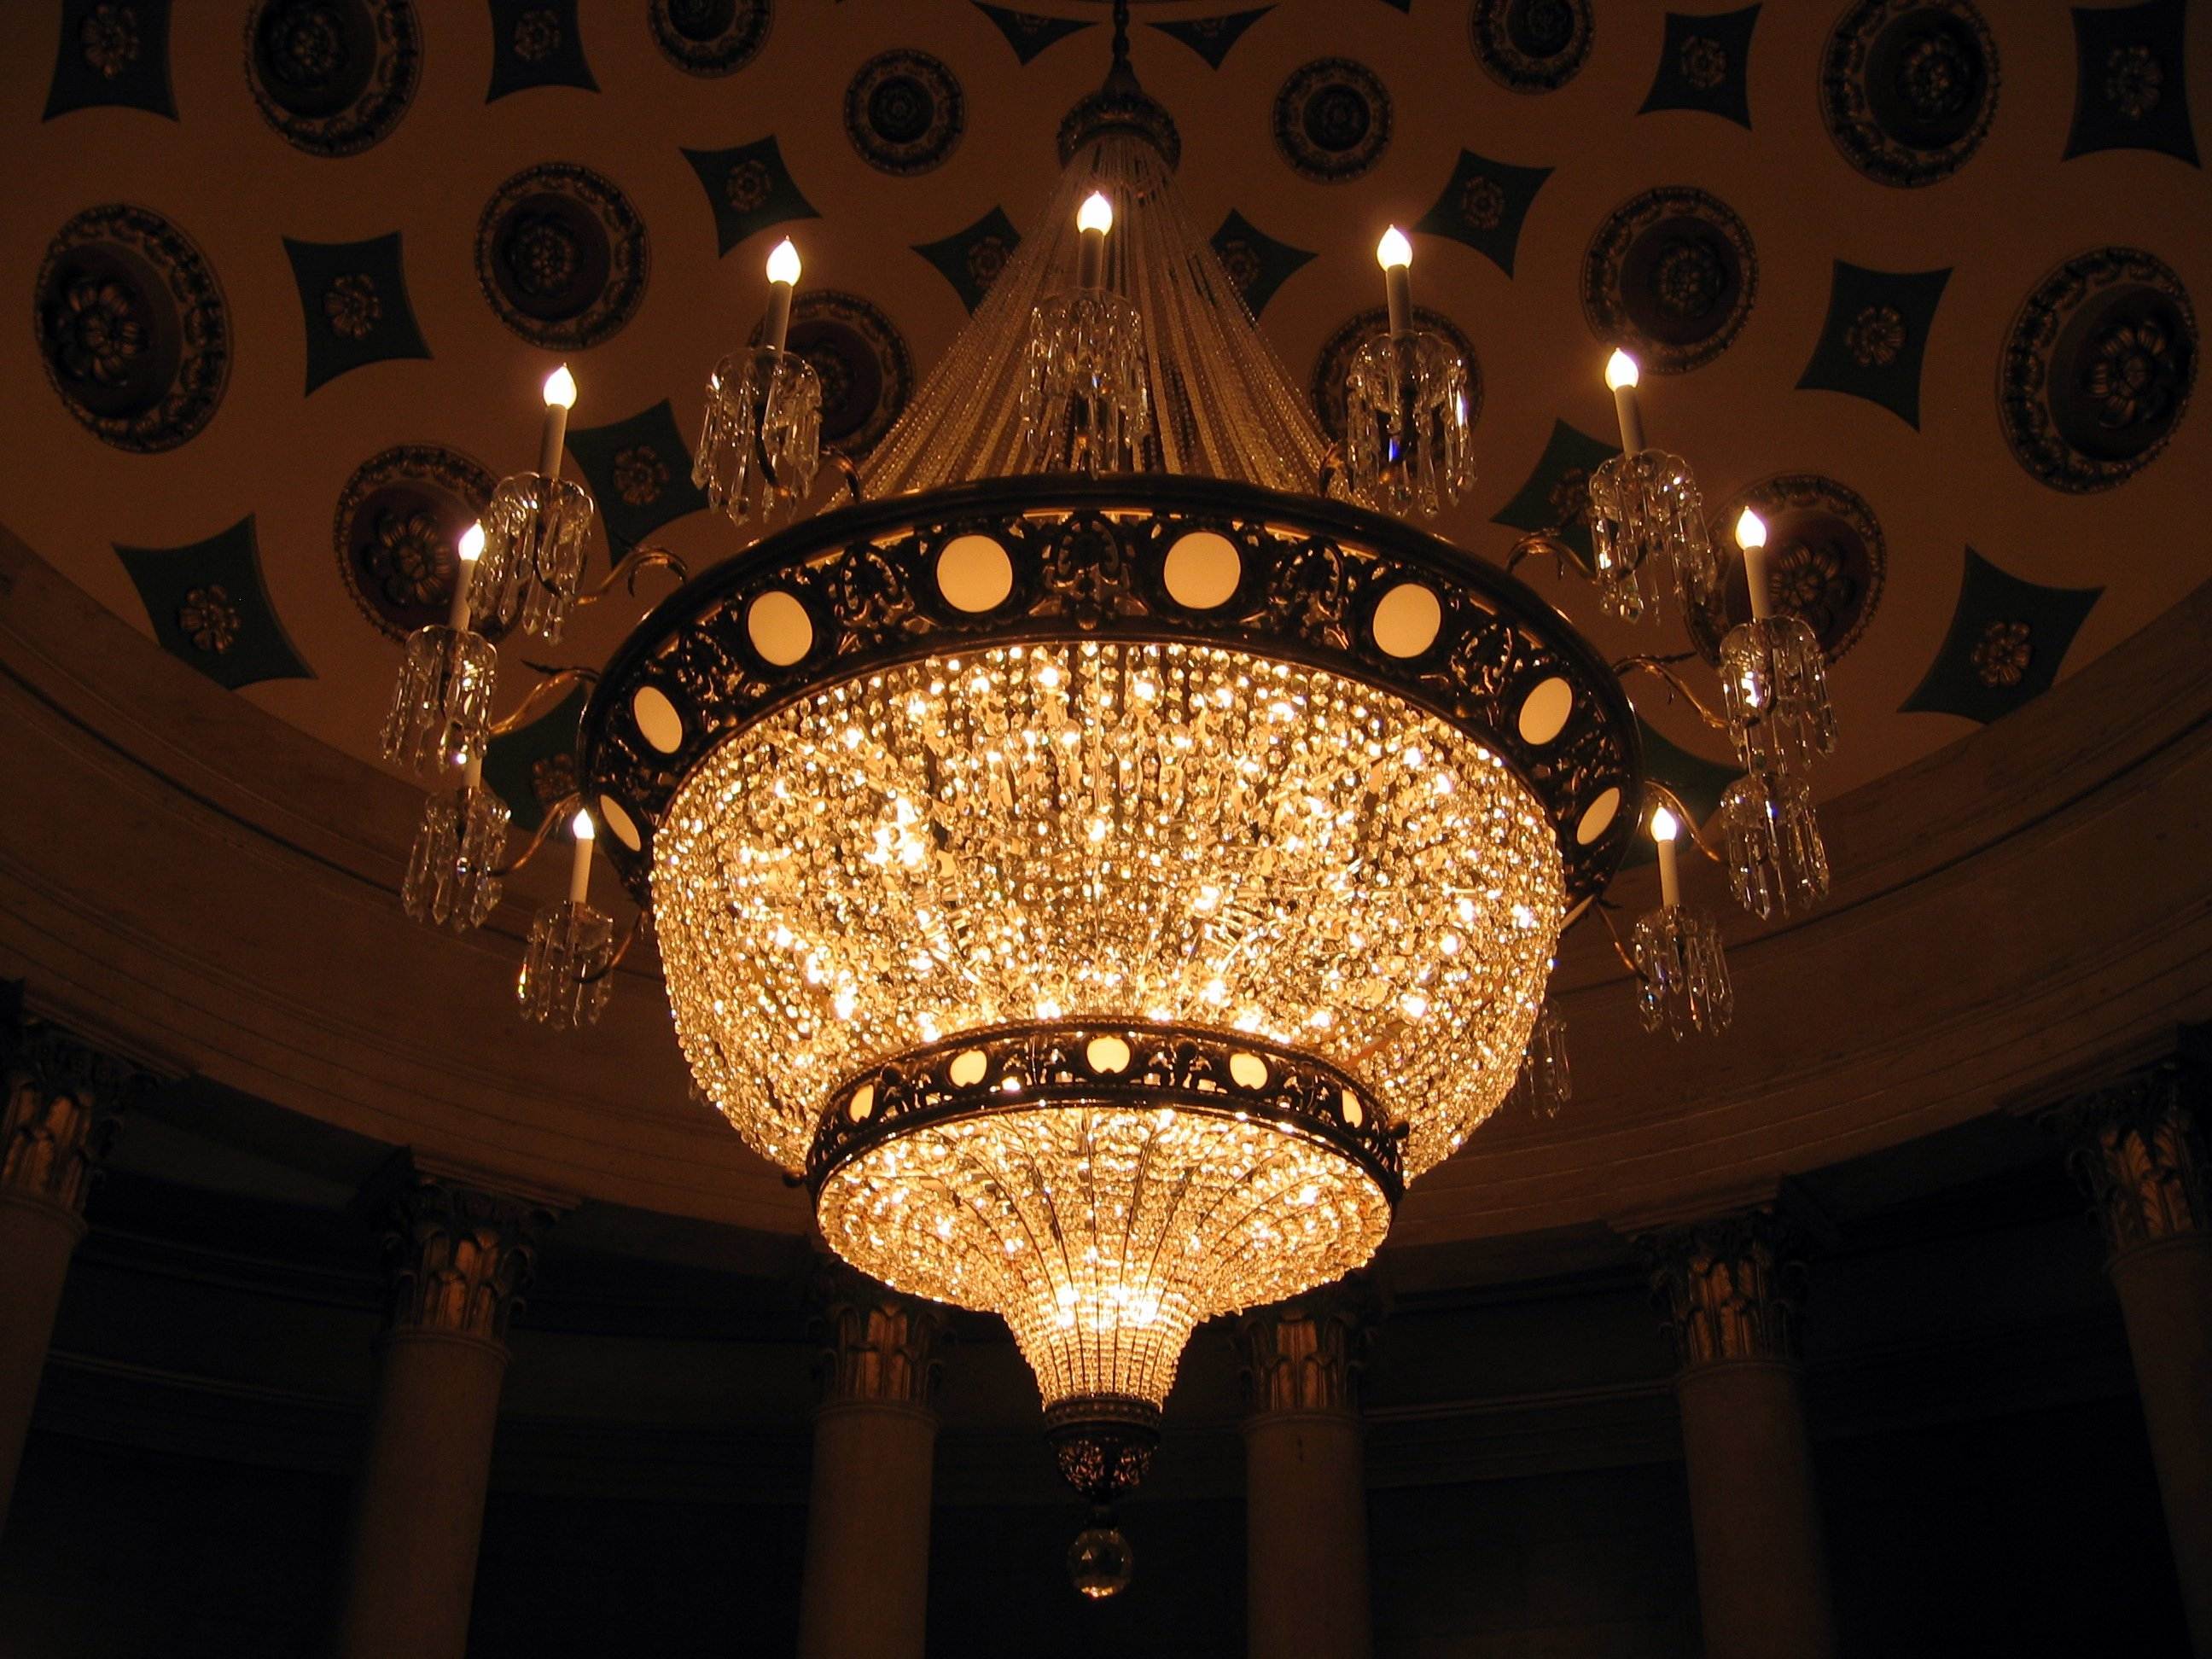 Top 10 Most Expensive Chandeliers In The World Design Limited With Regard To Expensive Chandeliers (#12 of 12)